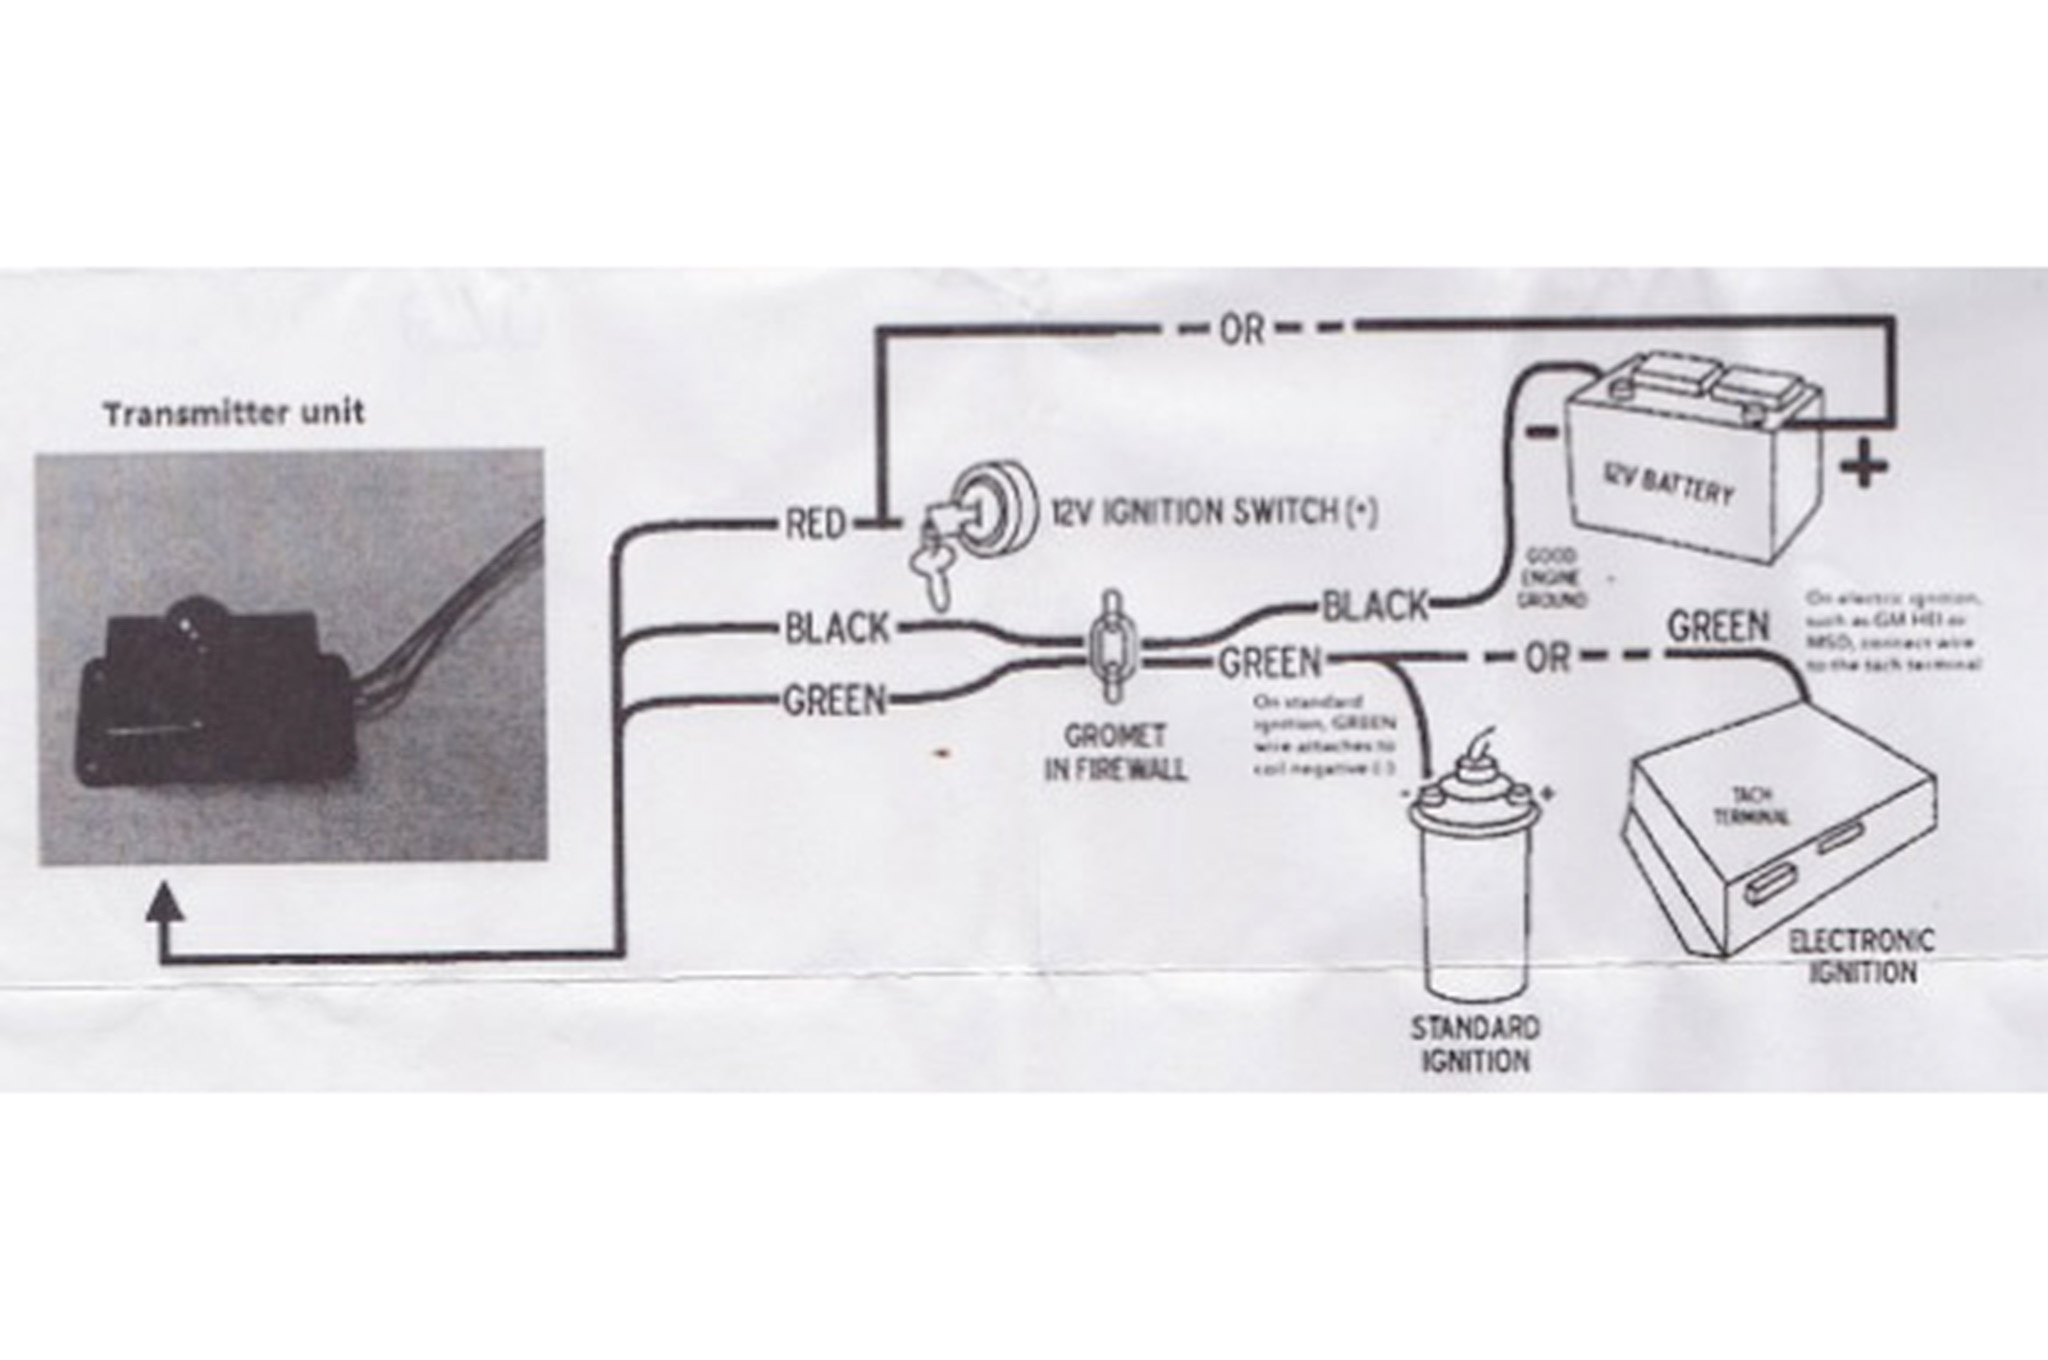 viper vx791 manual images diagram writing sample ideas Viper Remote Start Wiring Diagram viper 150 esp installation manual